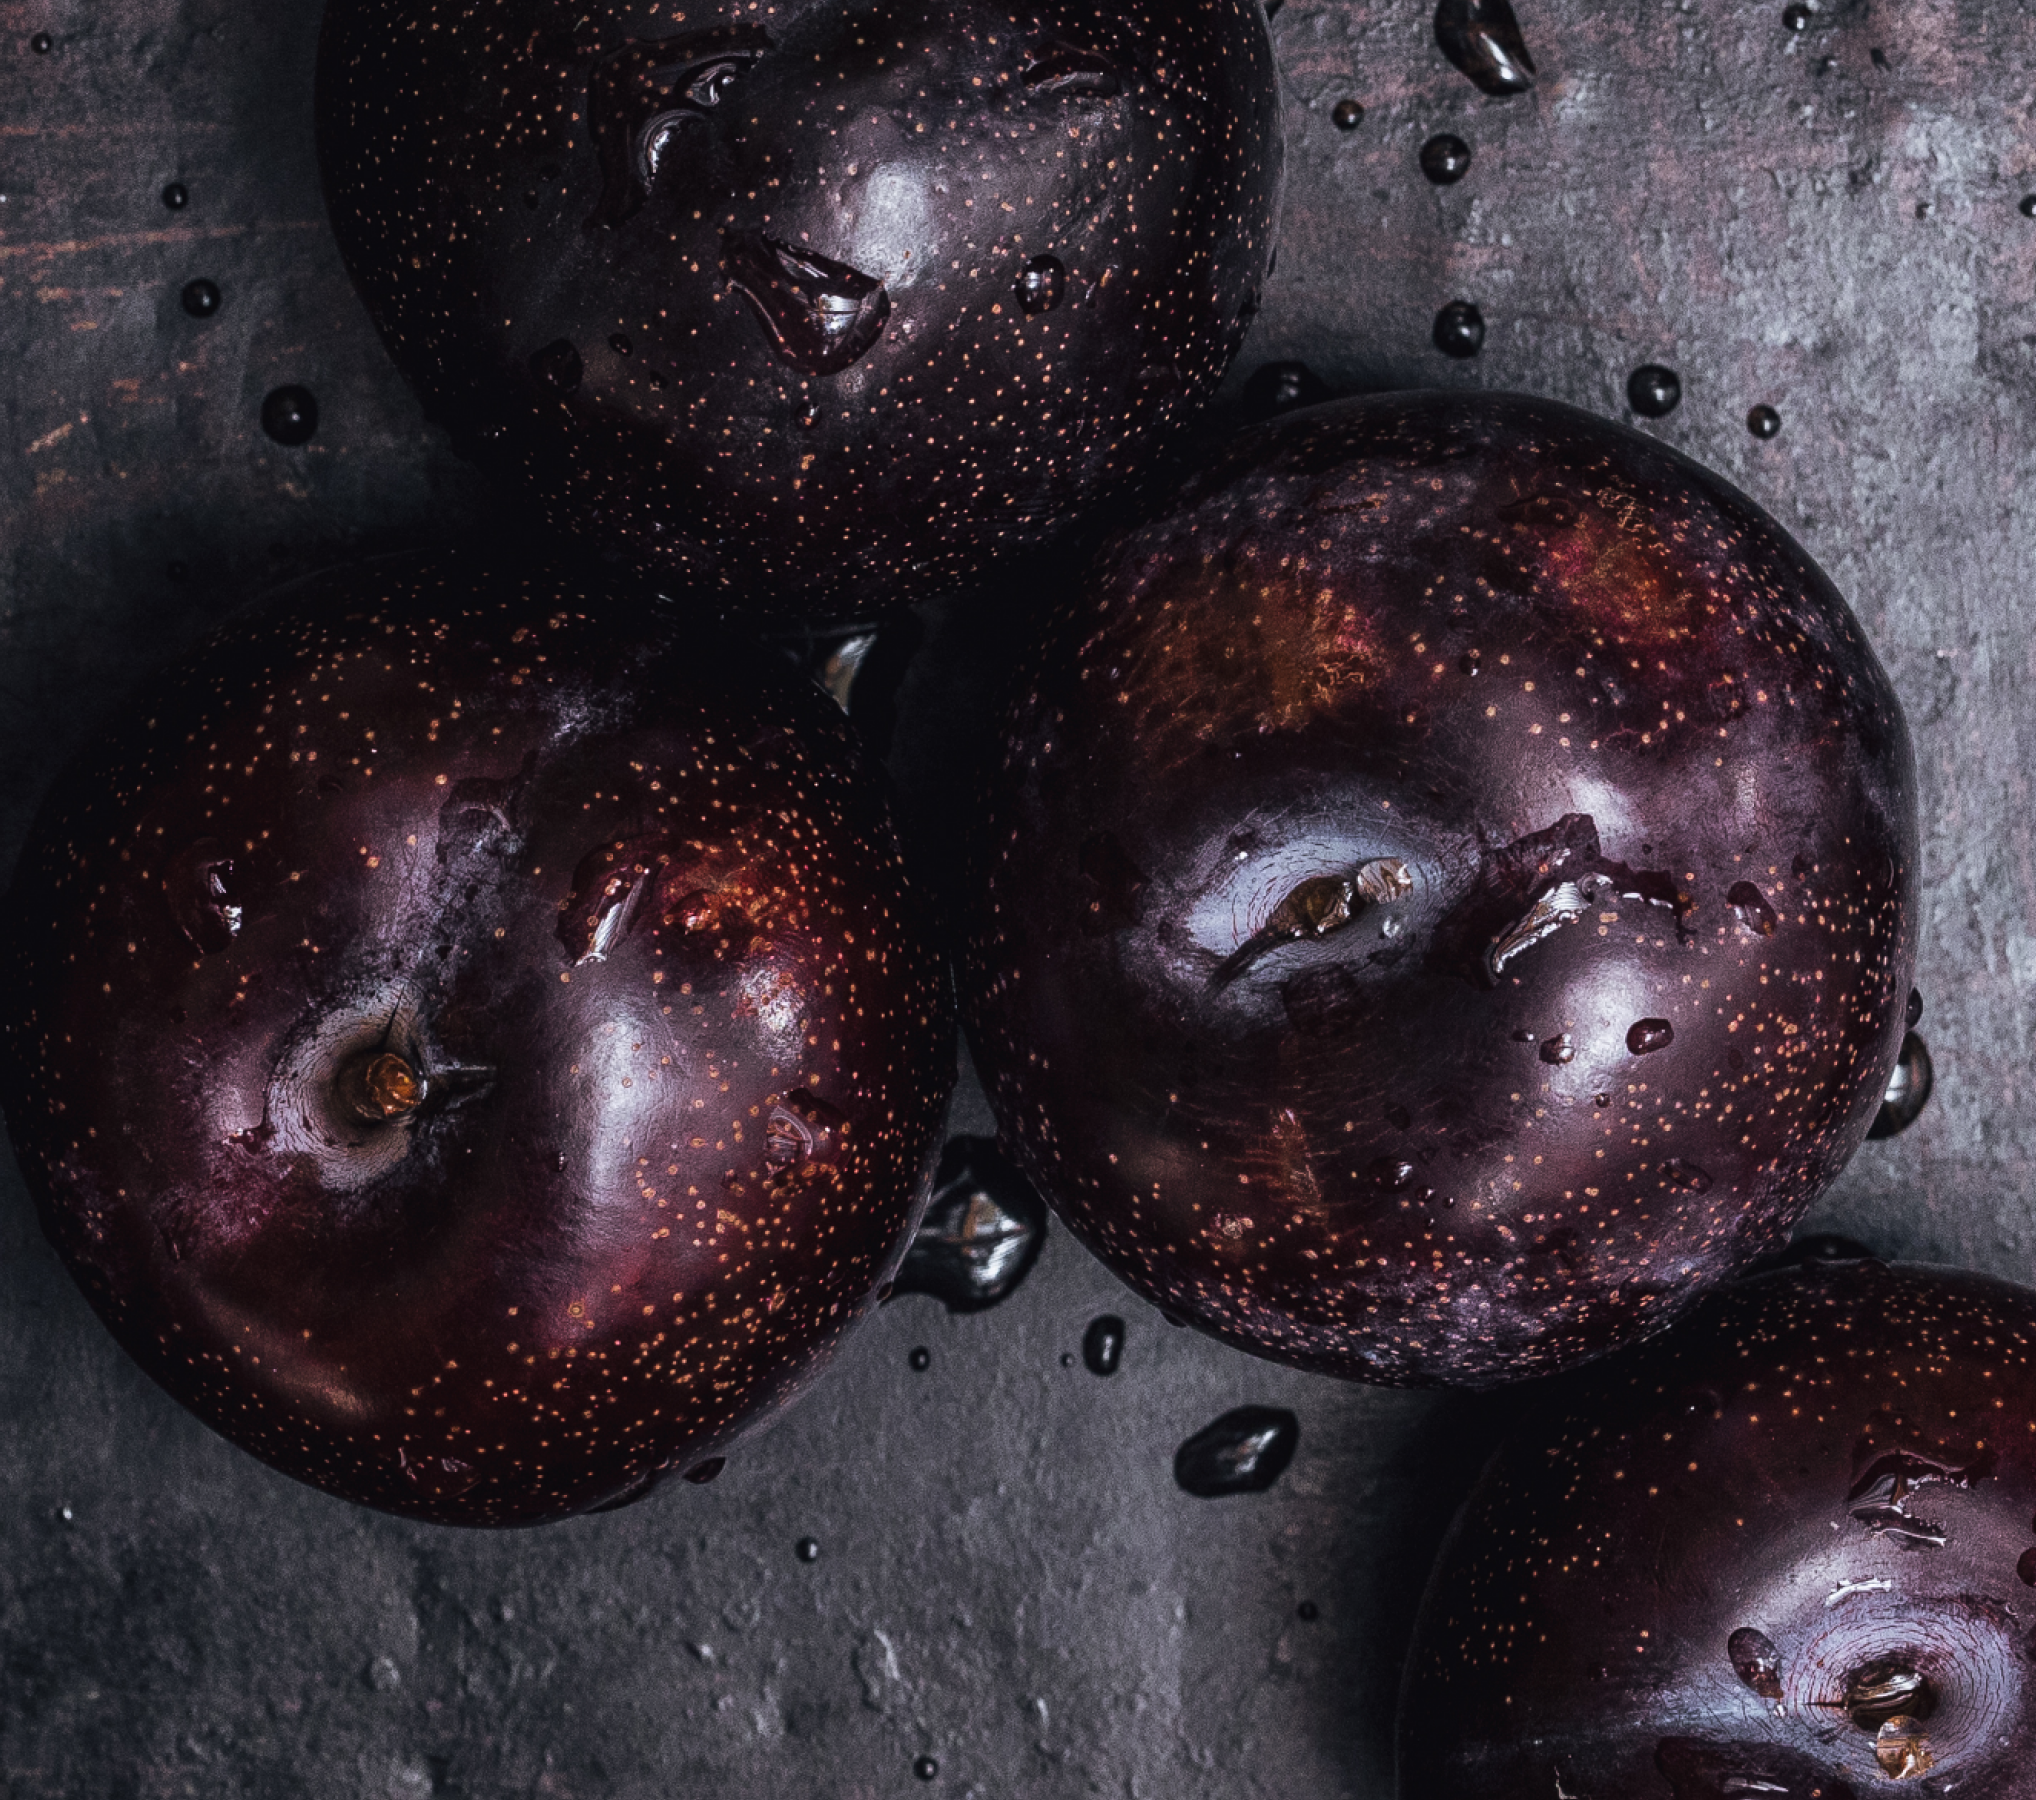 Four Queen Garnet plums sitting on a wooden bunch, with water droplets glistening around and on the fruit